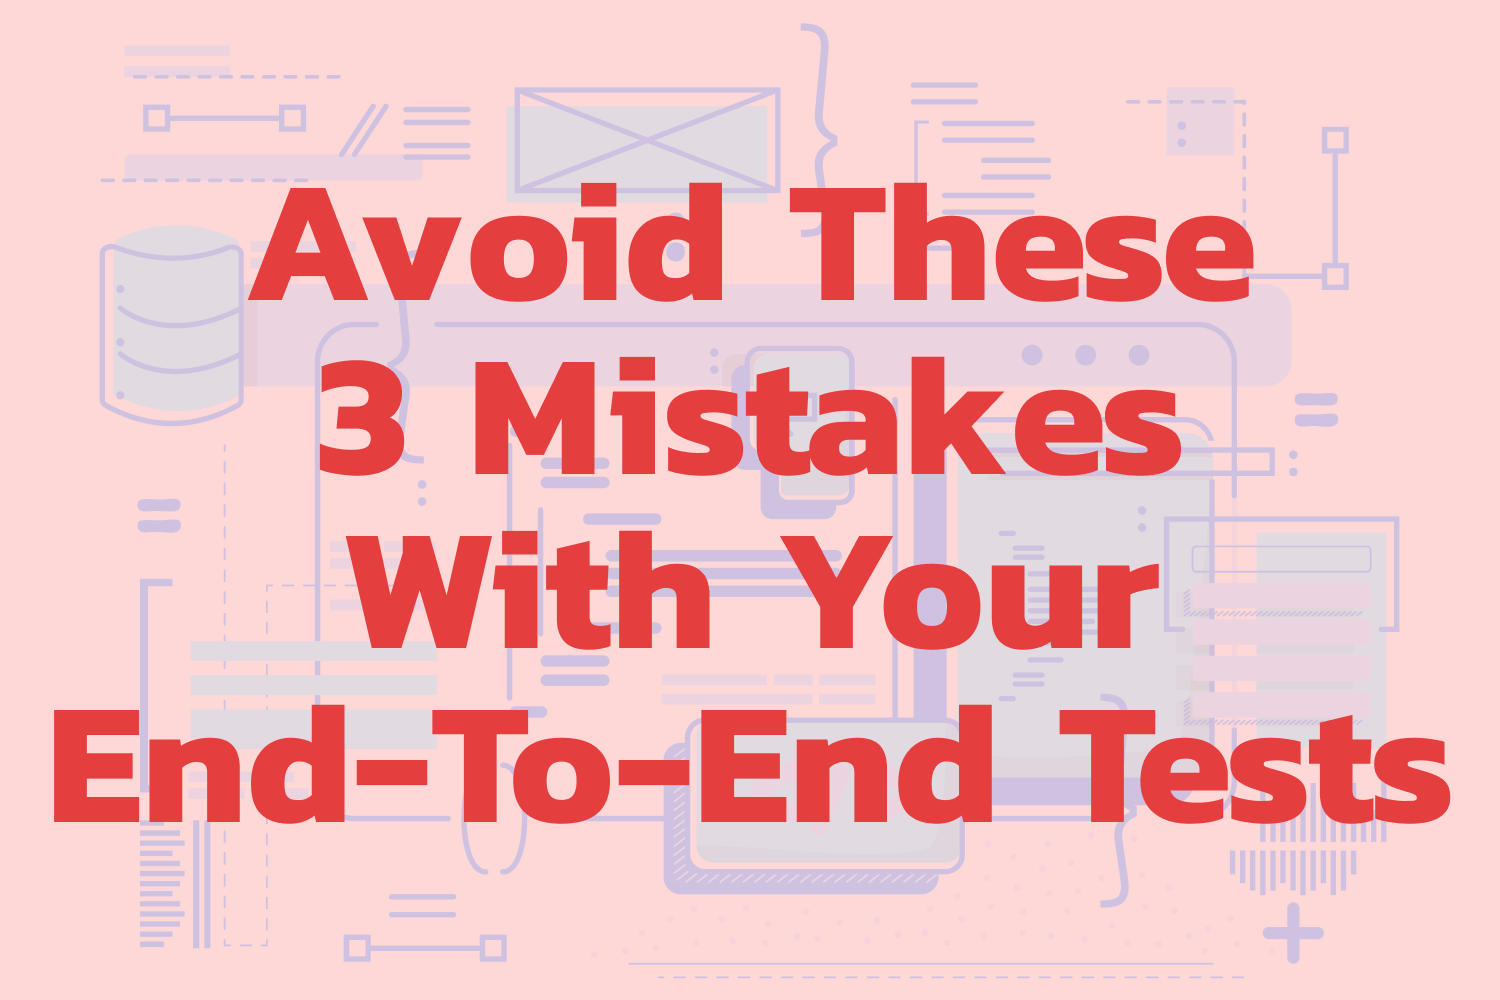 Avoid These 3 Mistakes With Your End-To-End Tests